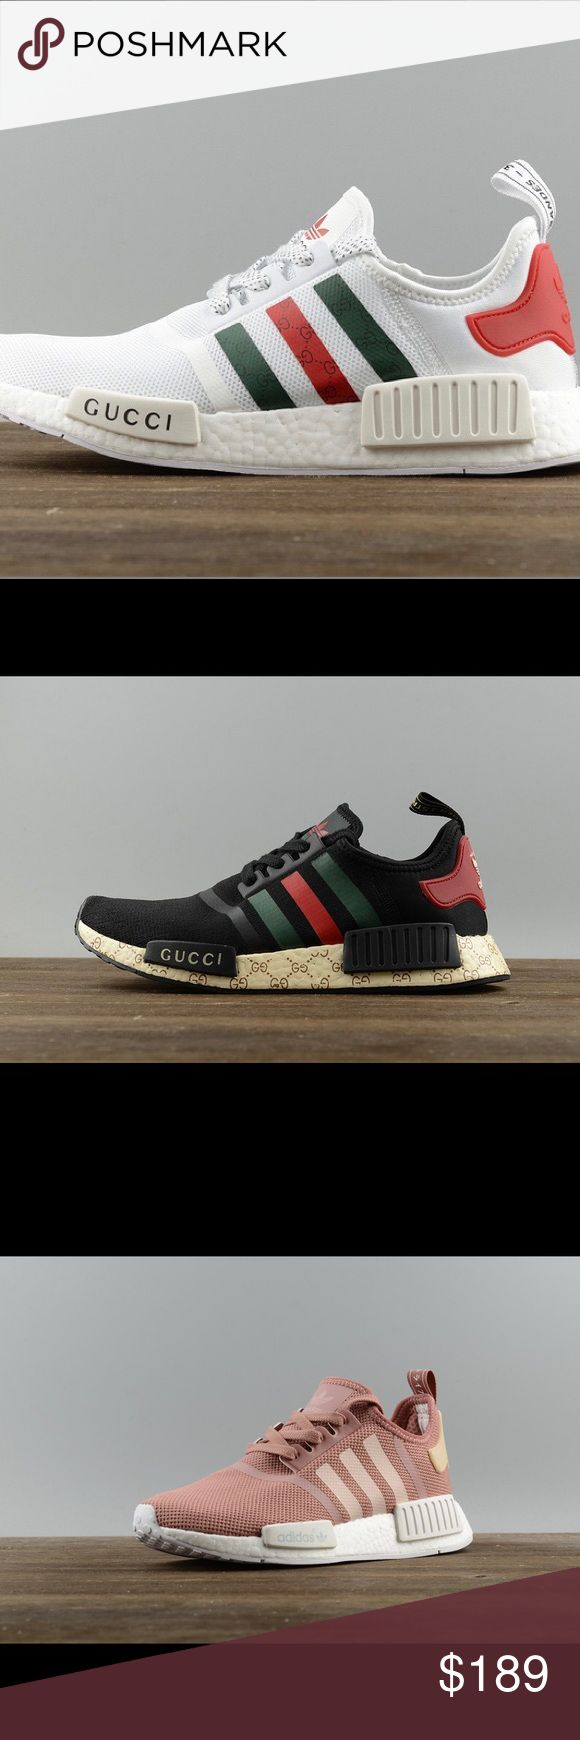 Gucci Adidas NMD fashion sneaker shoes New, comes with box.   I don't reply any comment, Please contact me at:catinaholmessc@gmail.com  ————————————————— Men mens womens women nike vans converse adidas puma roshe air max athletic sports white pink black p http://feedproxy.google.com/fashionshoes11